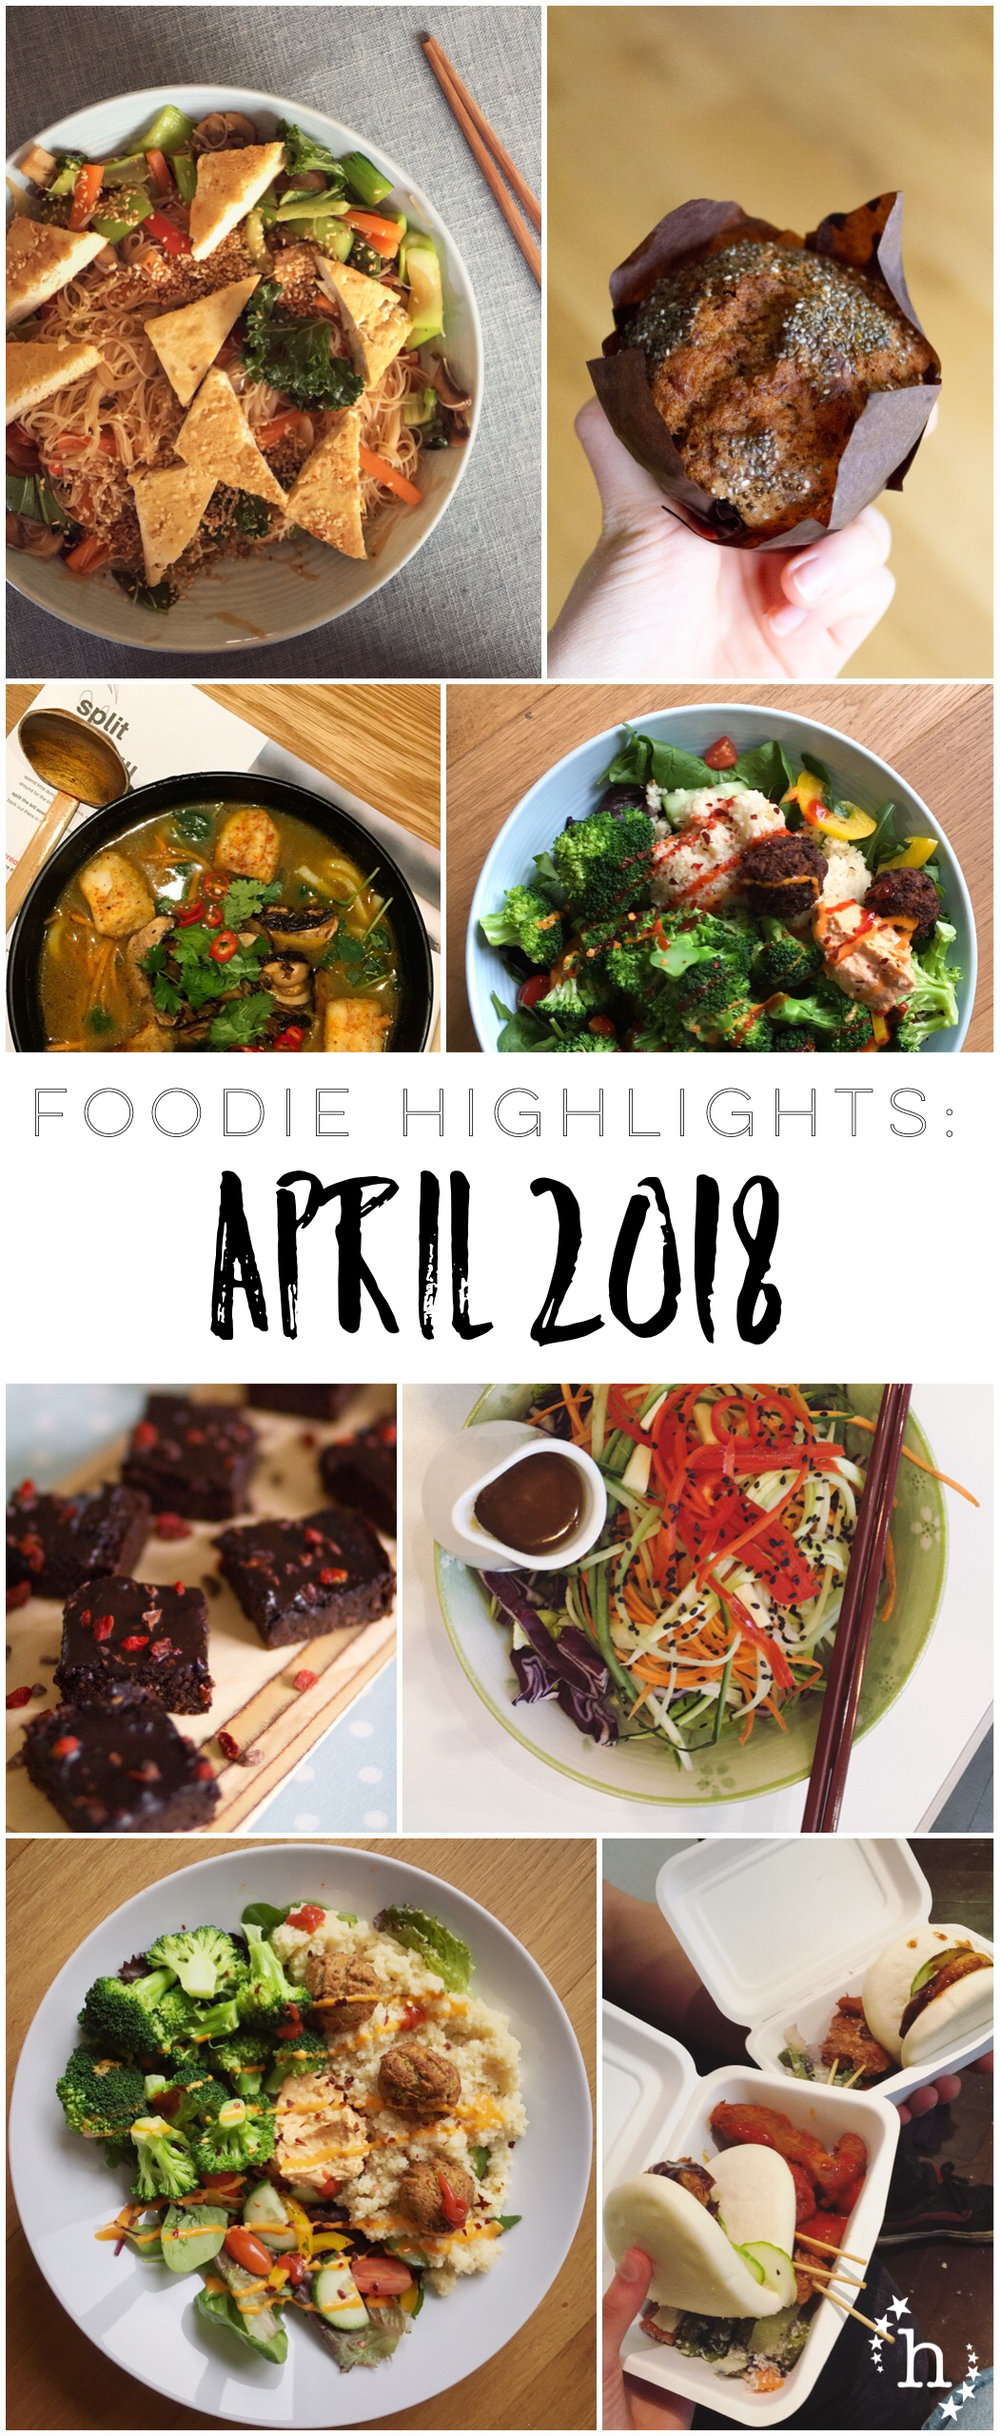 Foodie Highlights: April 2018 - hefafa.me.uk